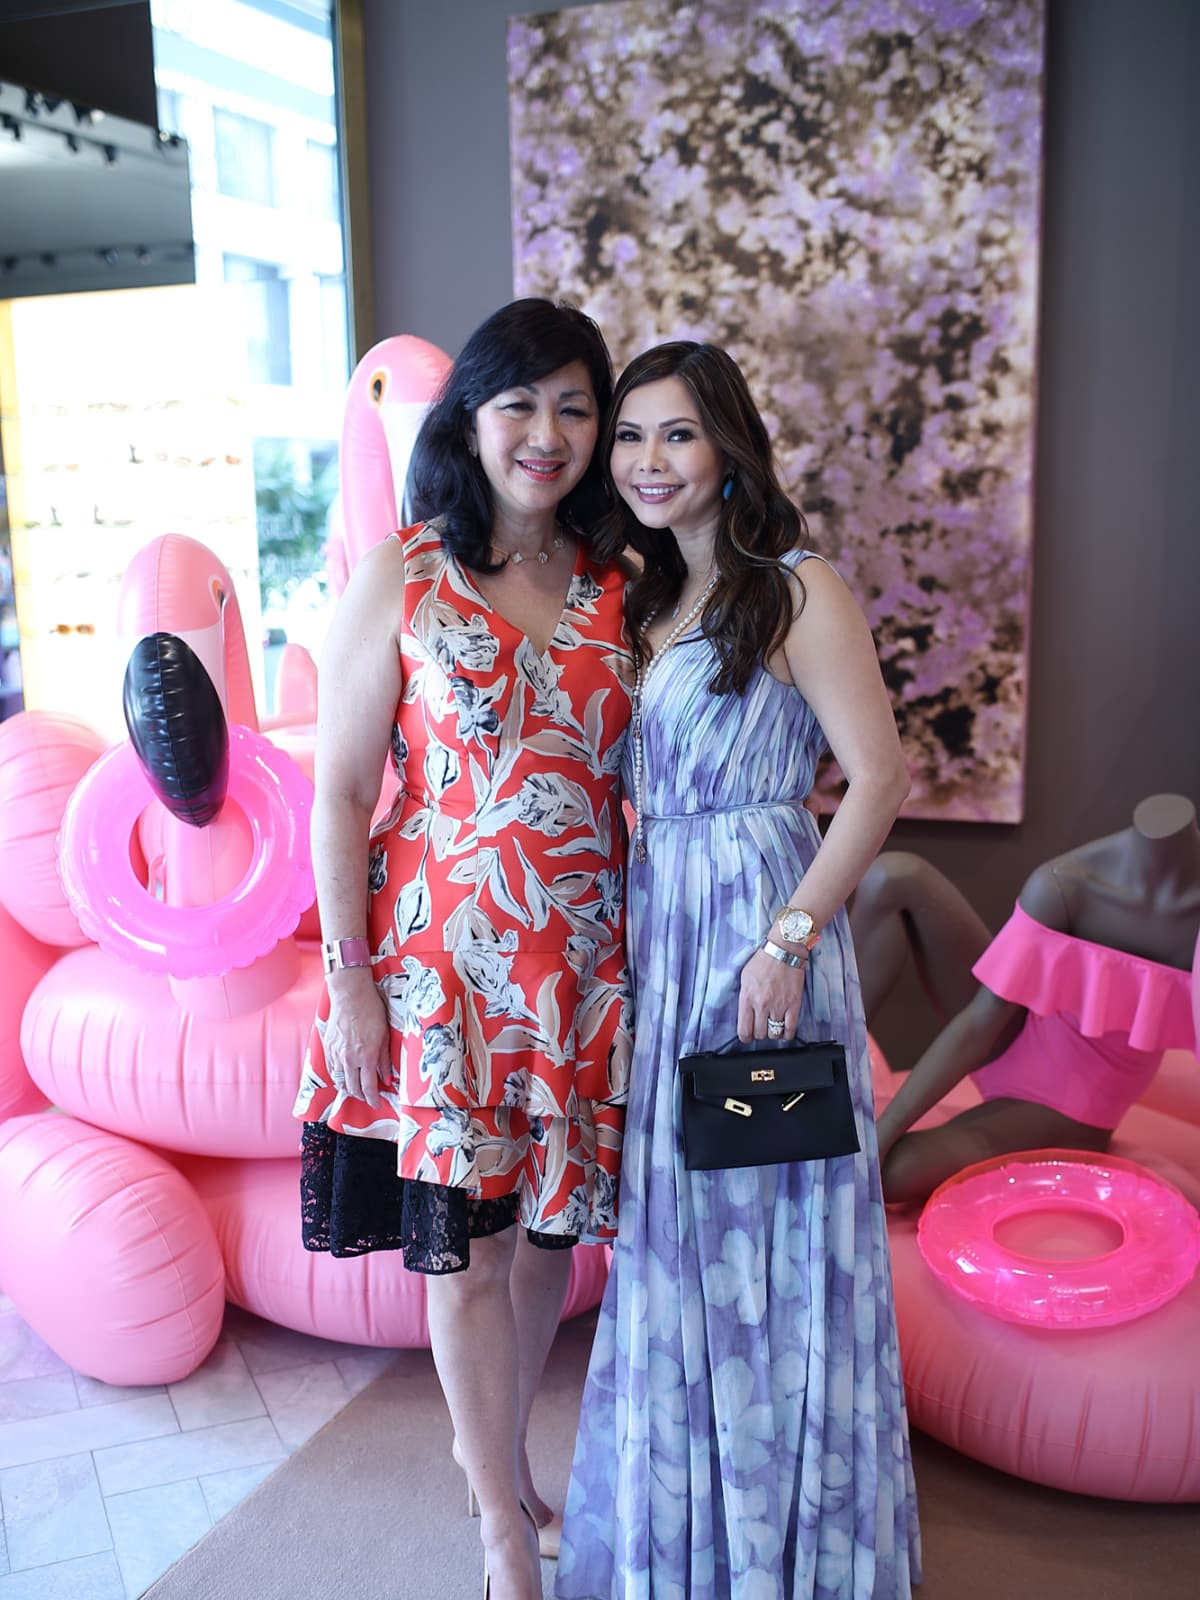 Alice Mao Brams, Amy Cichoso at The Webster party